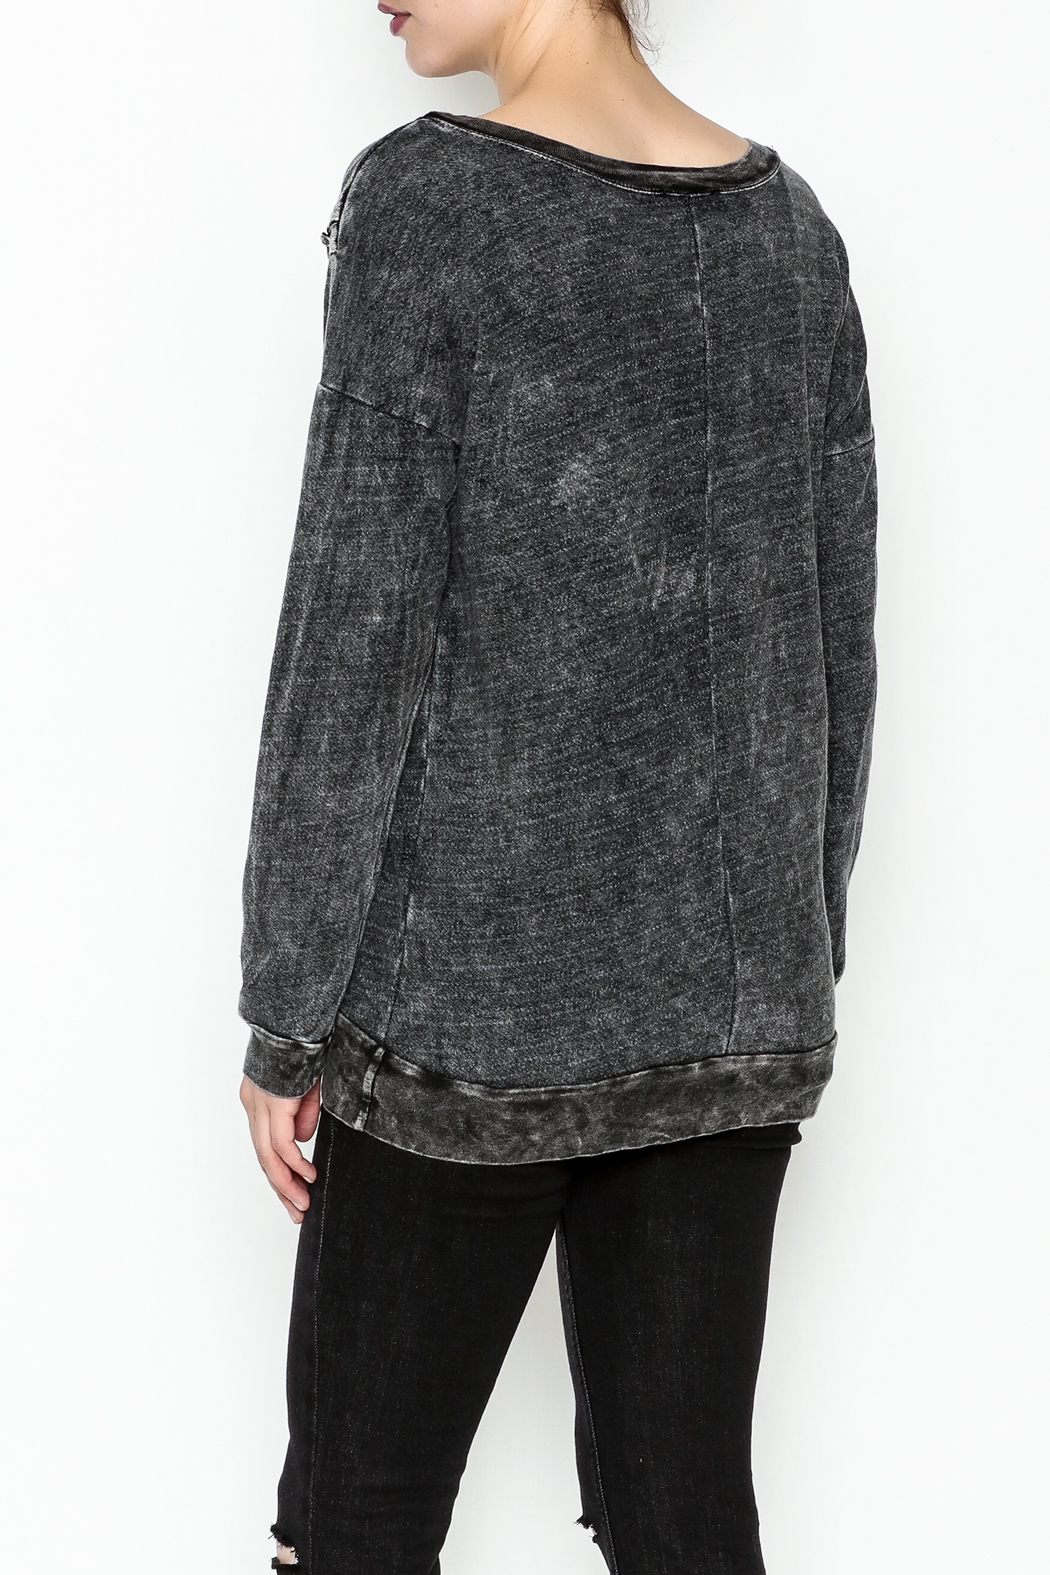 T. Party Mineral Wash Lace Sweatshirt - Back Cropped Image